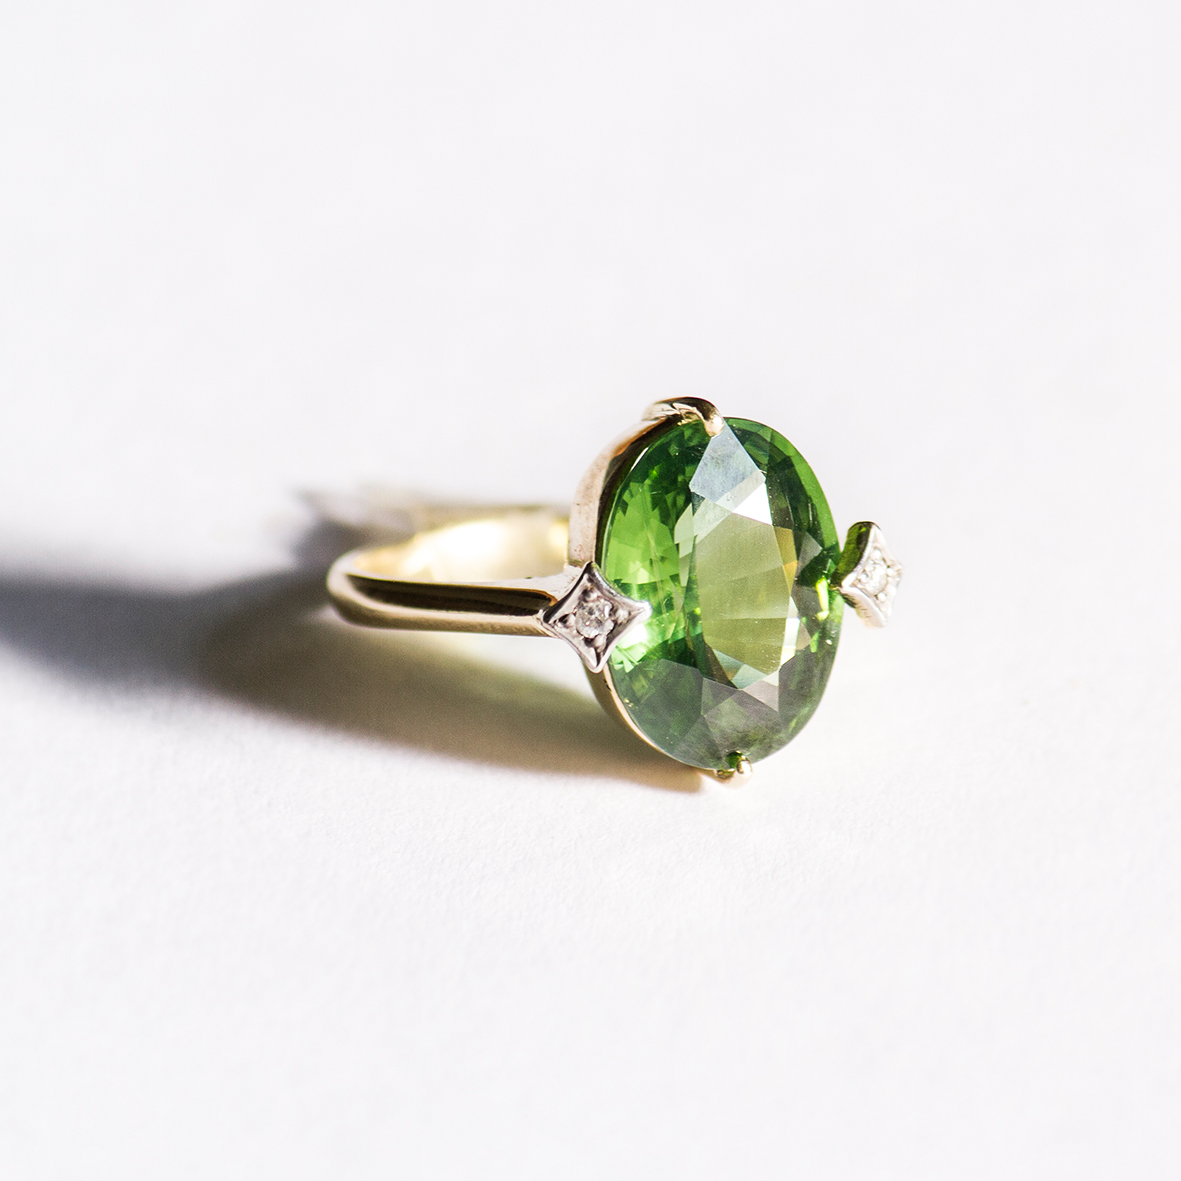 3. OONA_gems of ceylon_ficha2_green zircon copia